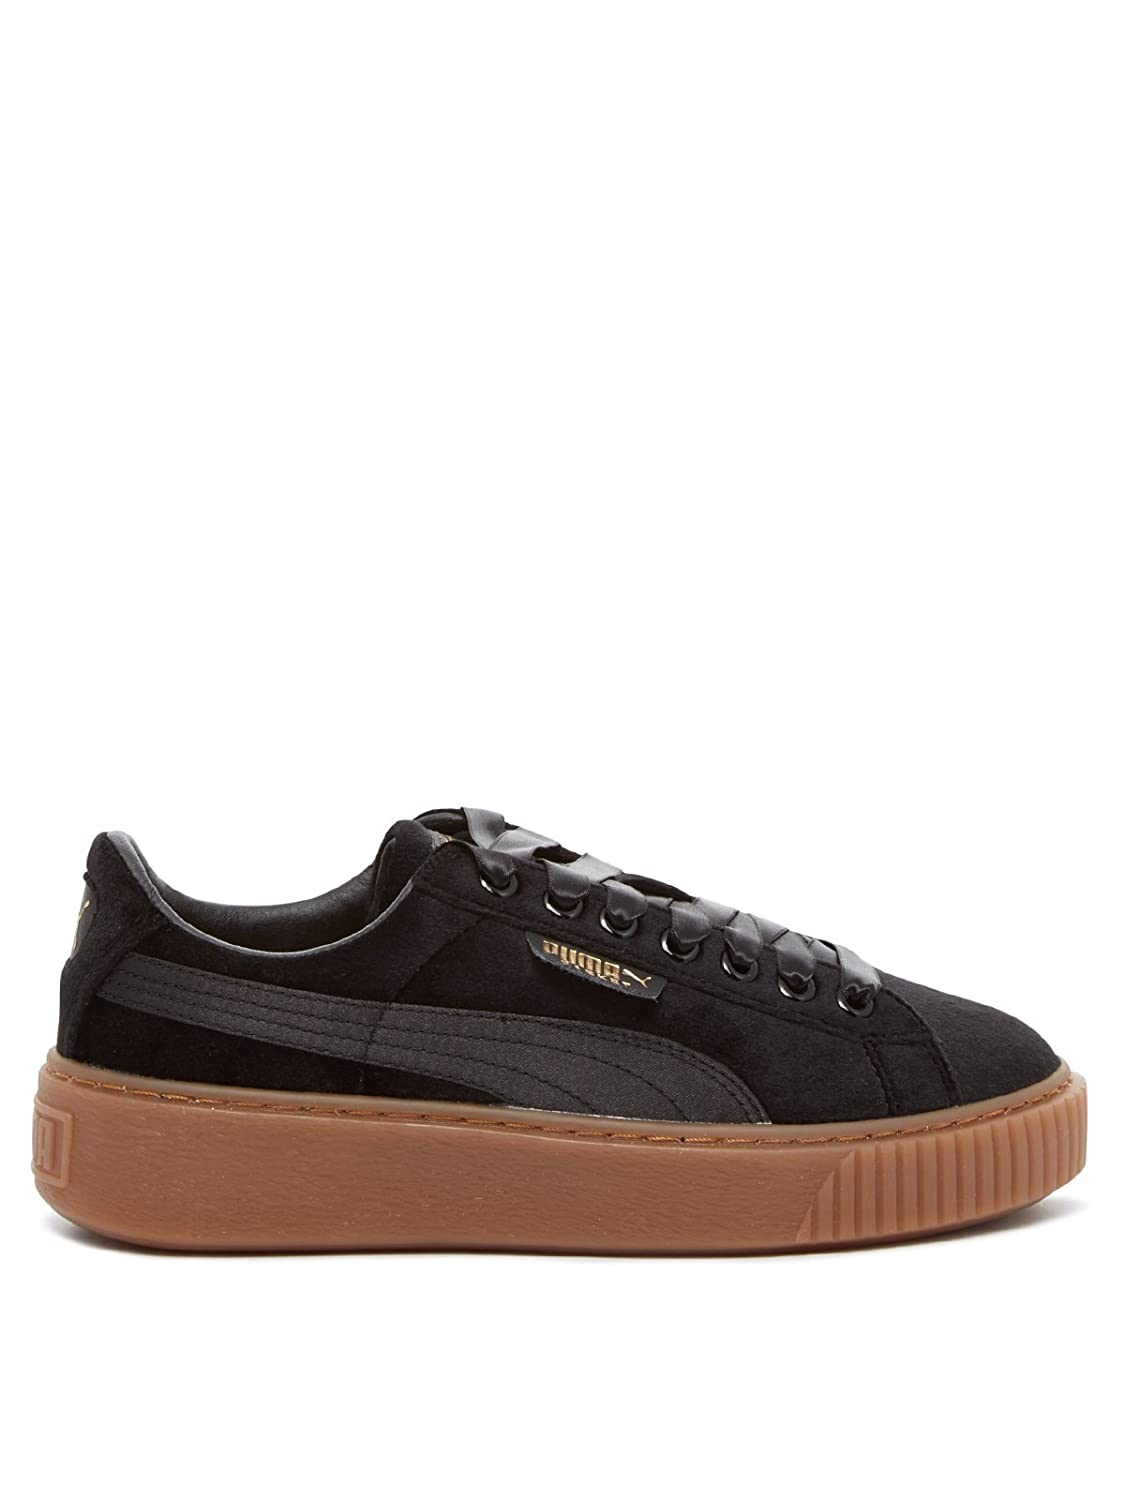 Puma Basket Platform Platform VS W B018911N16 VS chaussures Noir 157dc49 - latesttechnology.space